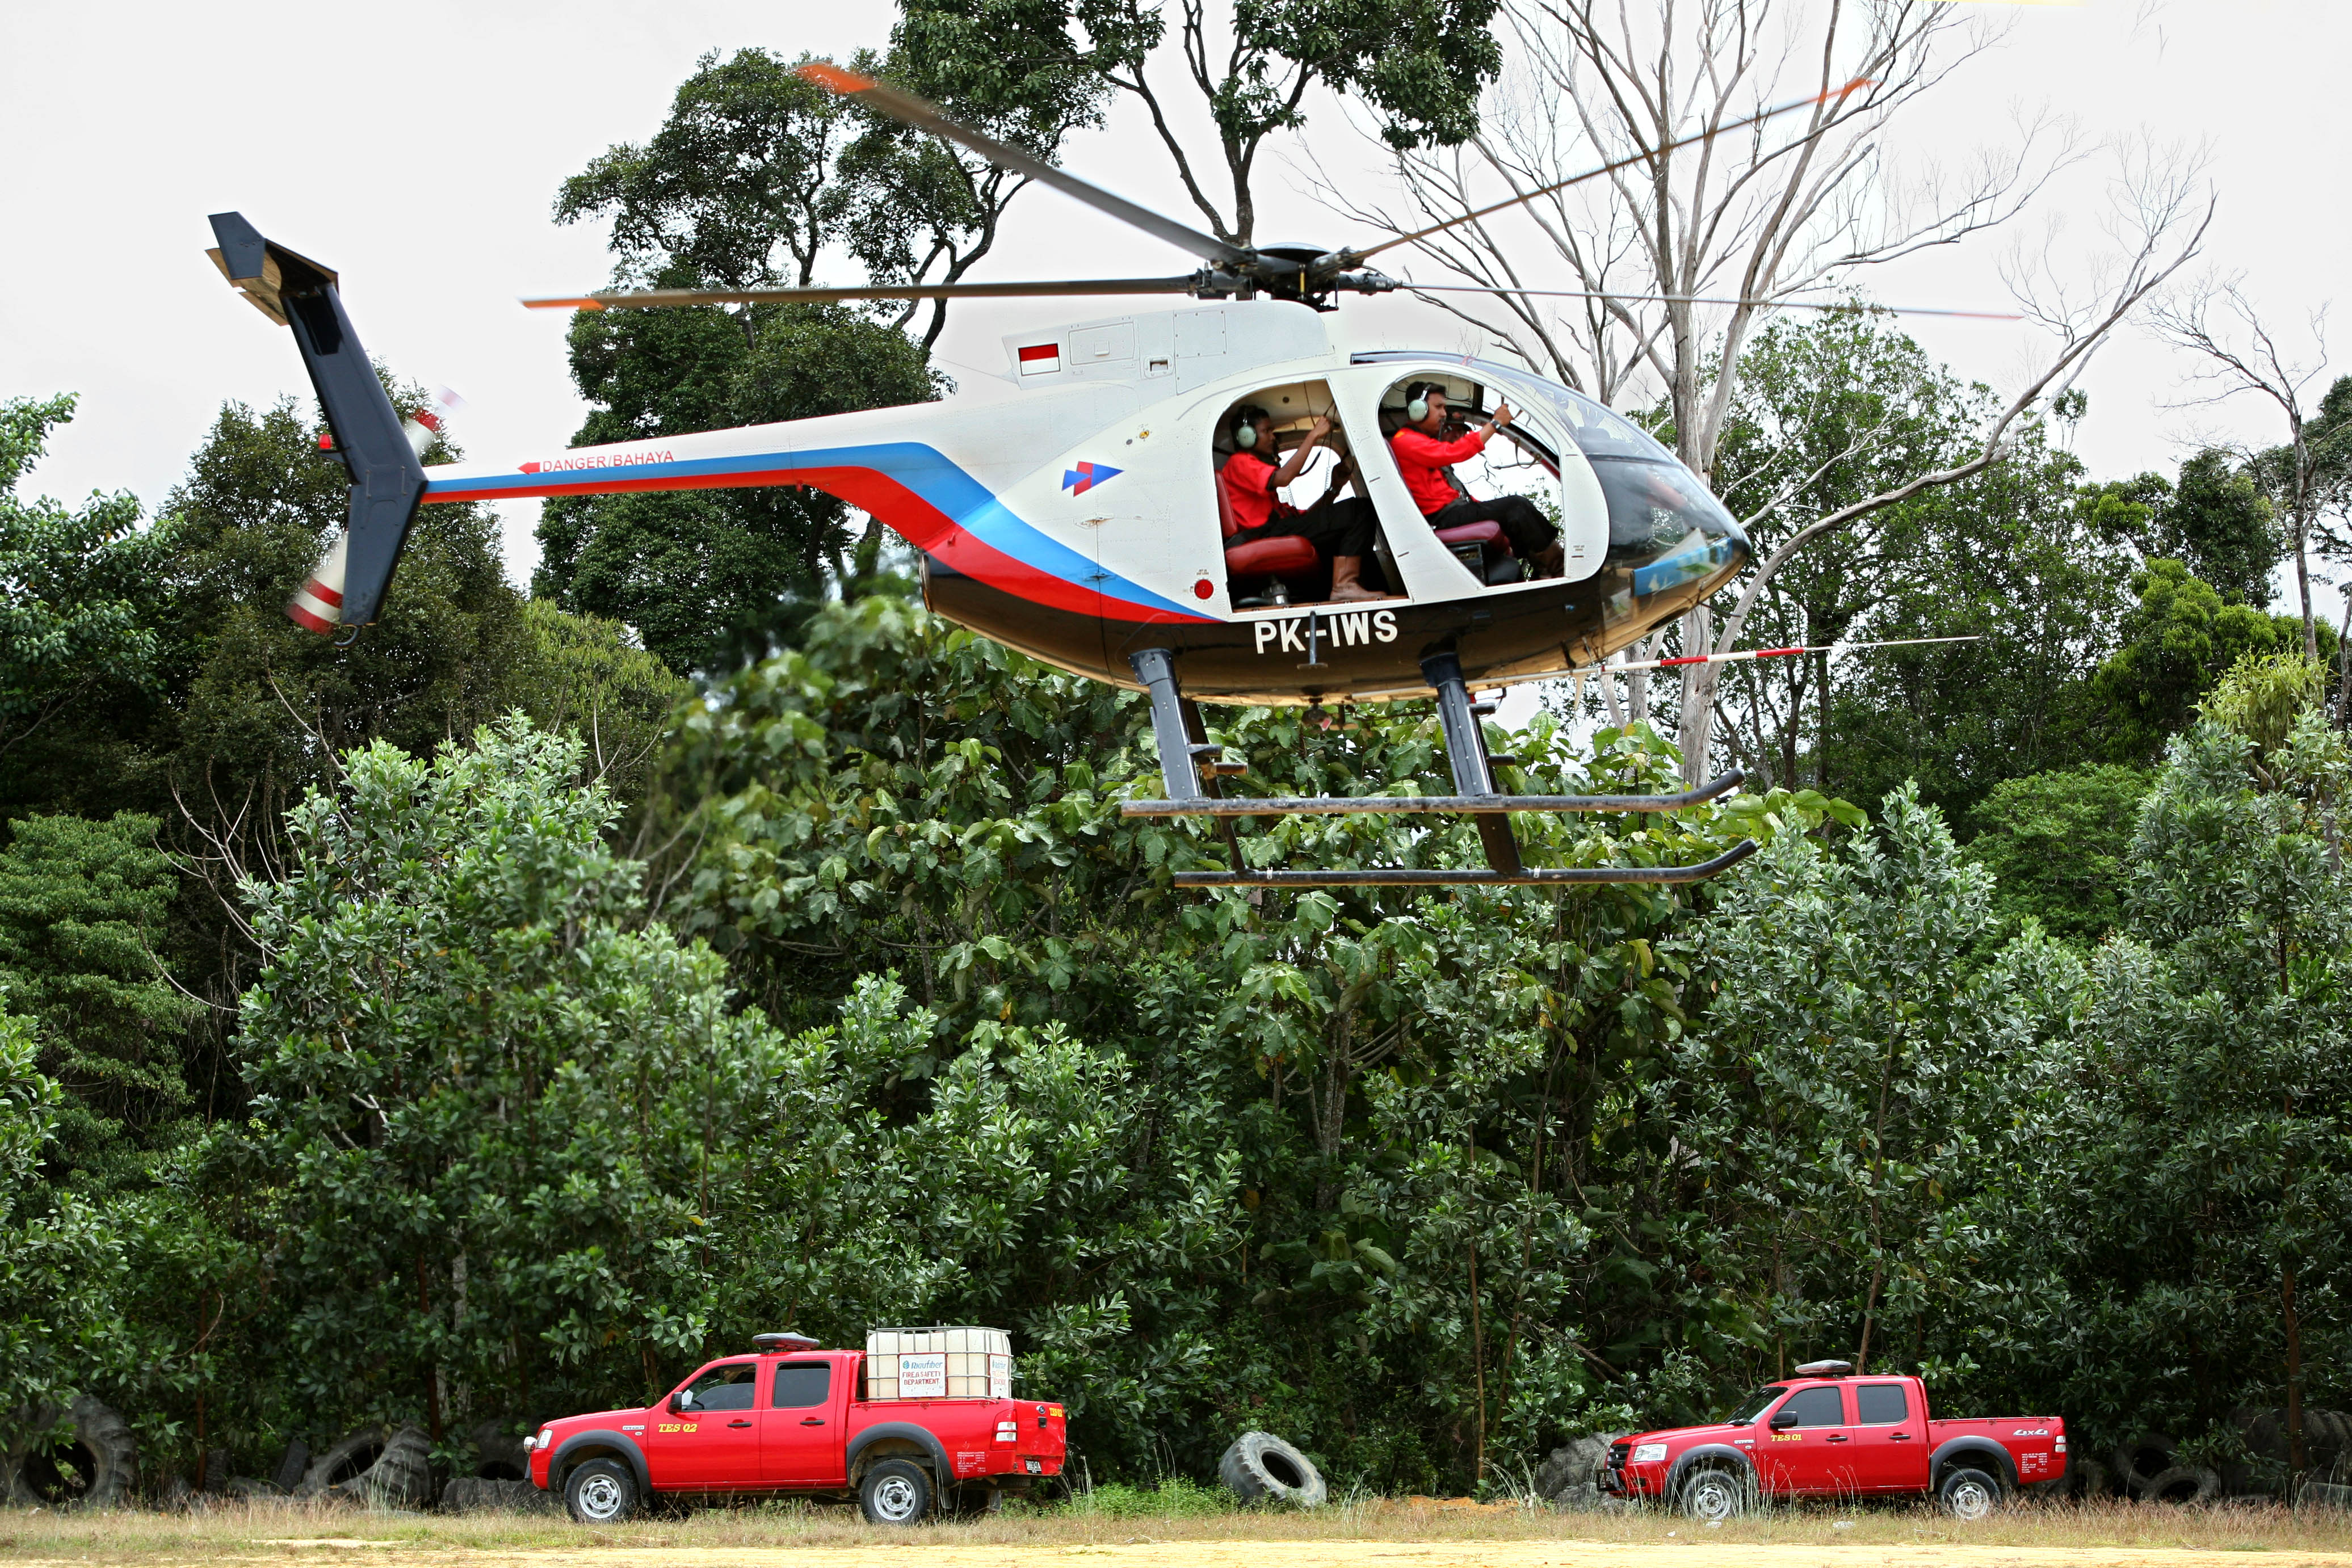 APRIL's commitment to the firefighting effort in Sumatra includes helicopter support.